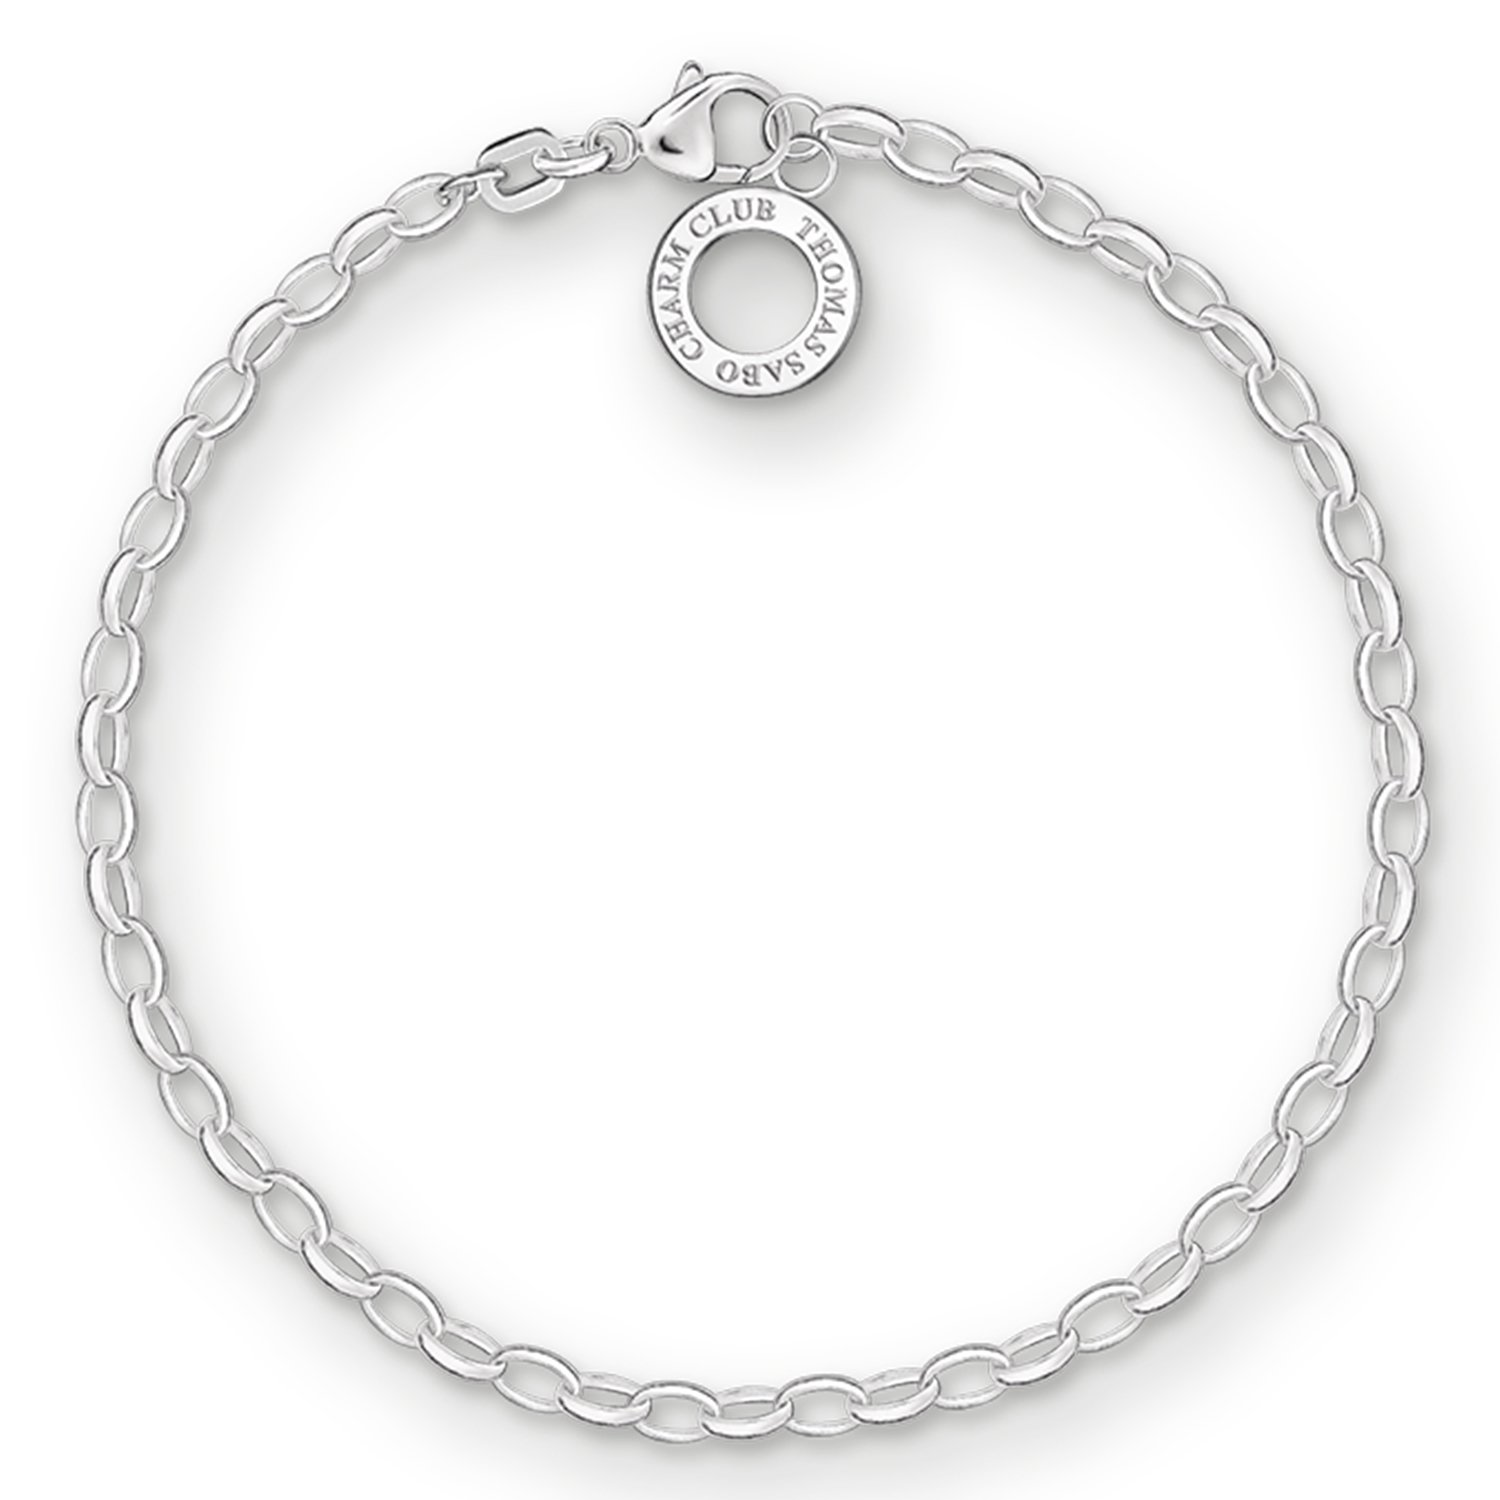 9459224fa871 Thomas Sabo Silver Bracelet for Charms Classic X0163-001-12